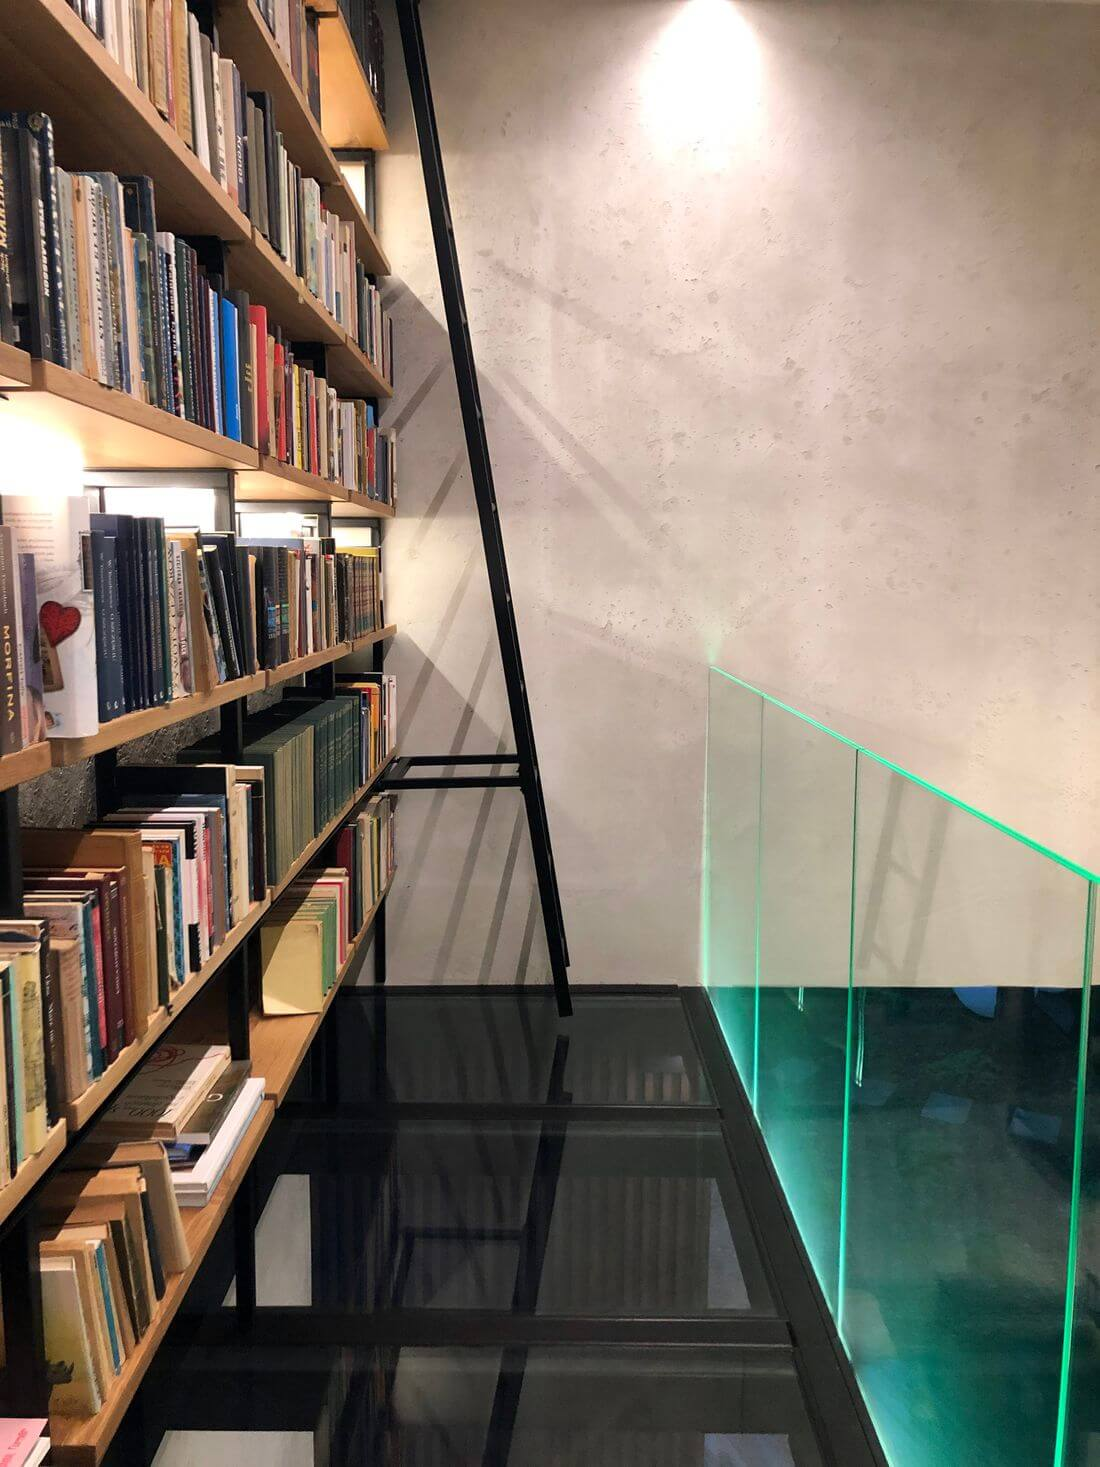 Glass railing and metal ladder on mezzanine with tempered glass floor and structural steel library